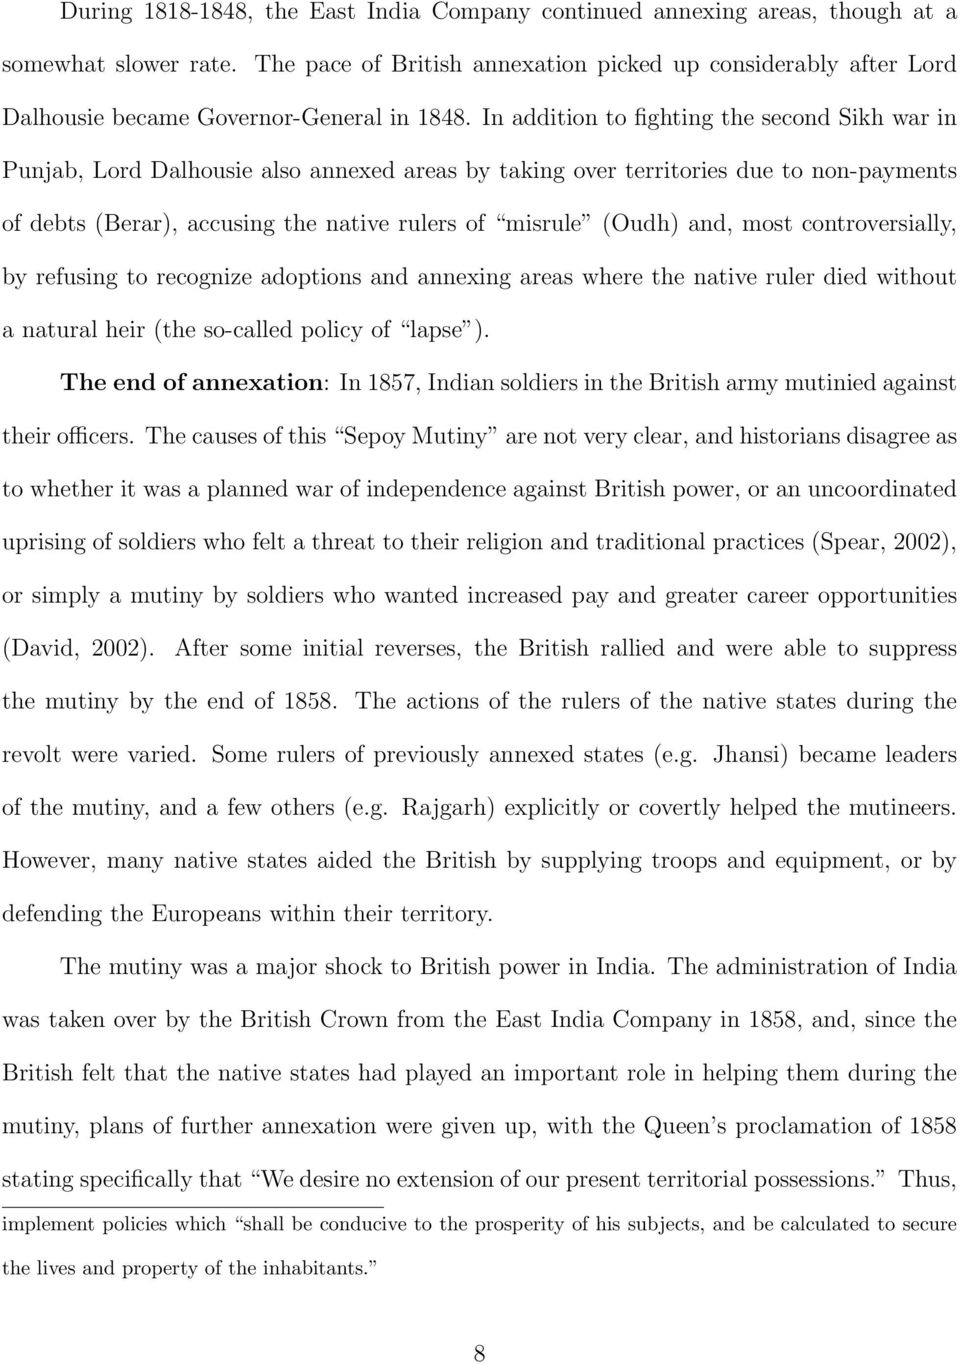 In addition to fighting the second Sikh war in Punjab, Lord Dalhousie also annexed areas by taking over territories due to non-payments of debts (Berar), accusing the native rulers of misrule (Oudh)